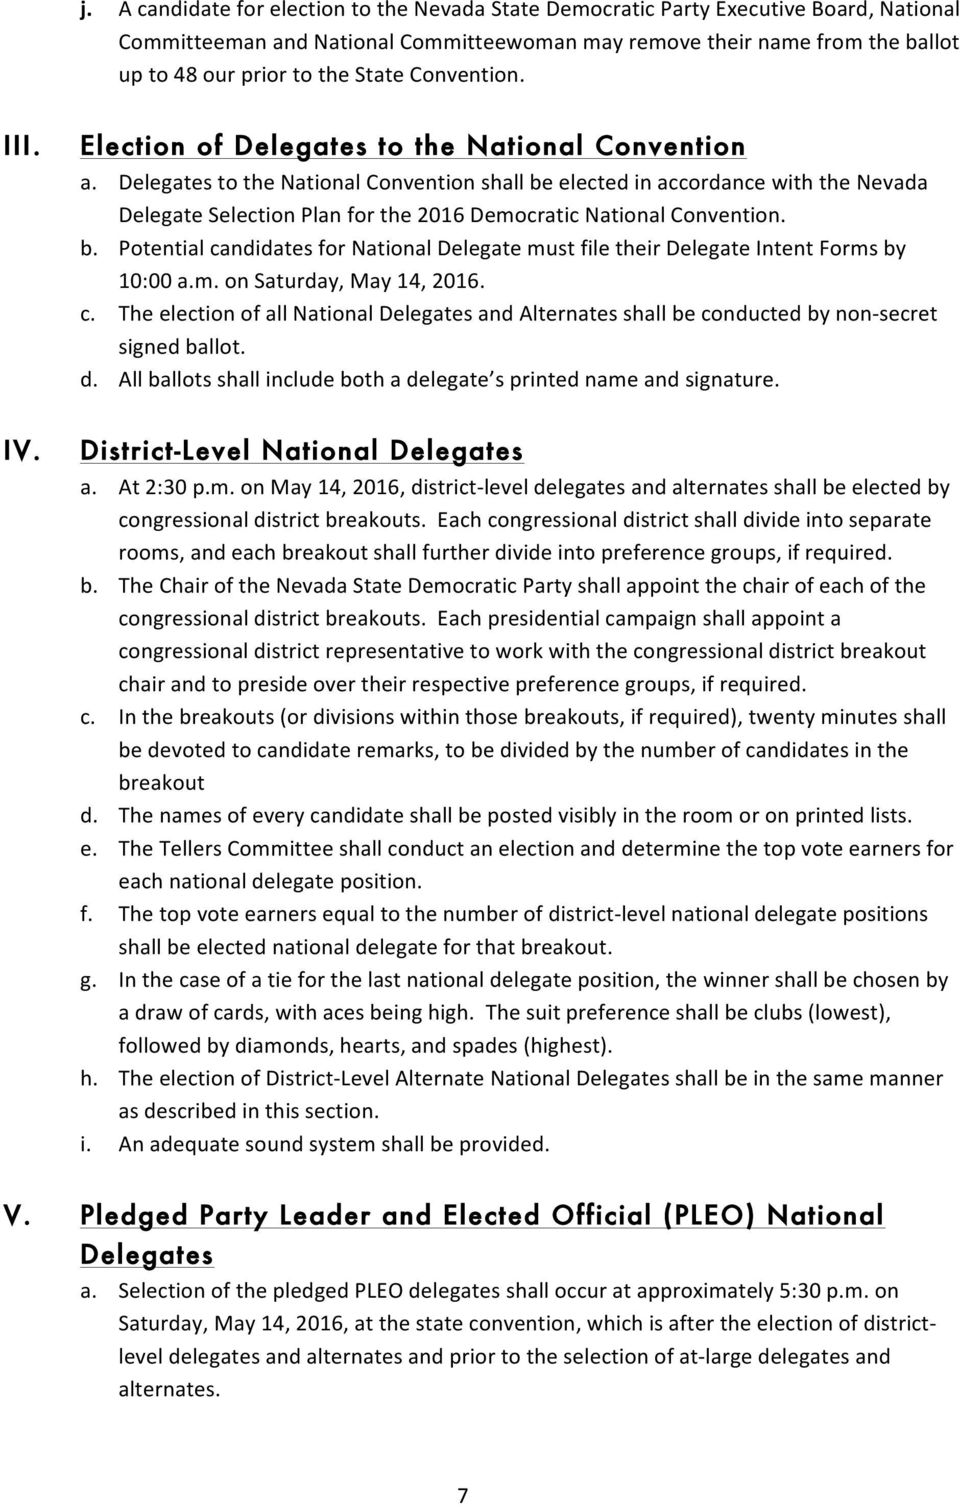 Delegates to the National Convention shall be elected in accordance with the Nevada Delegate Selection Plan for the 2016 Democratic National Convention. b. Potential candidates for National Delegate must file their Delegate Intent Forms by 10:00 a.